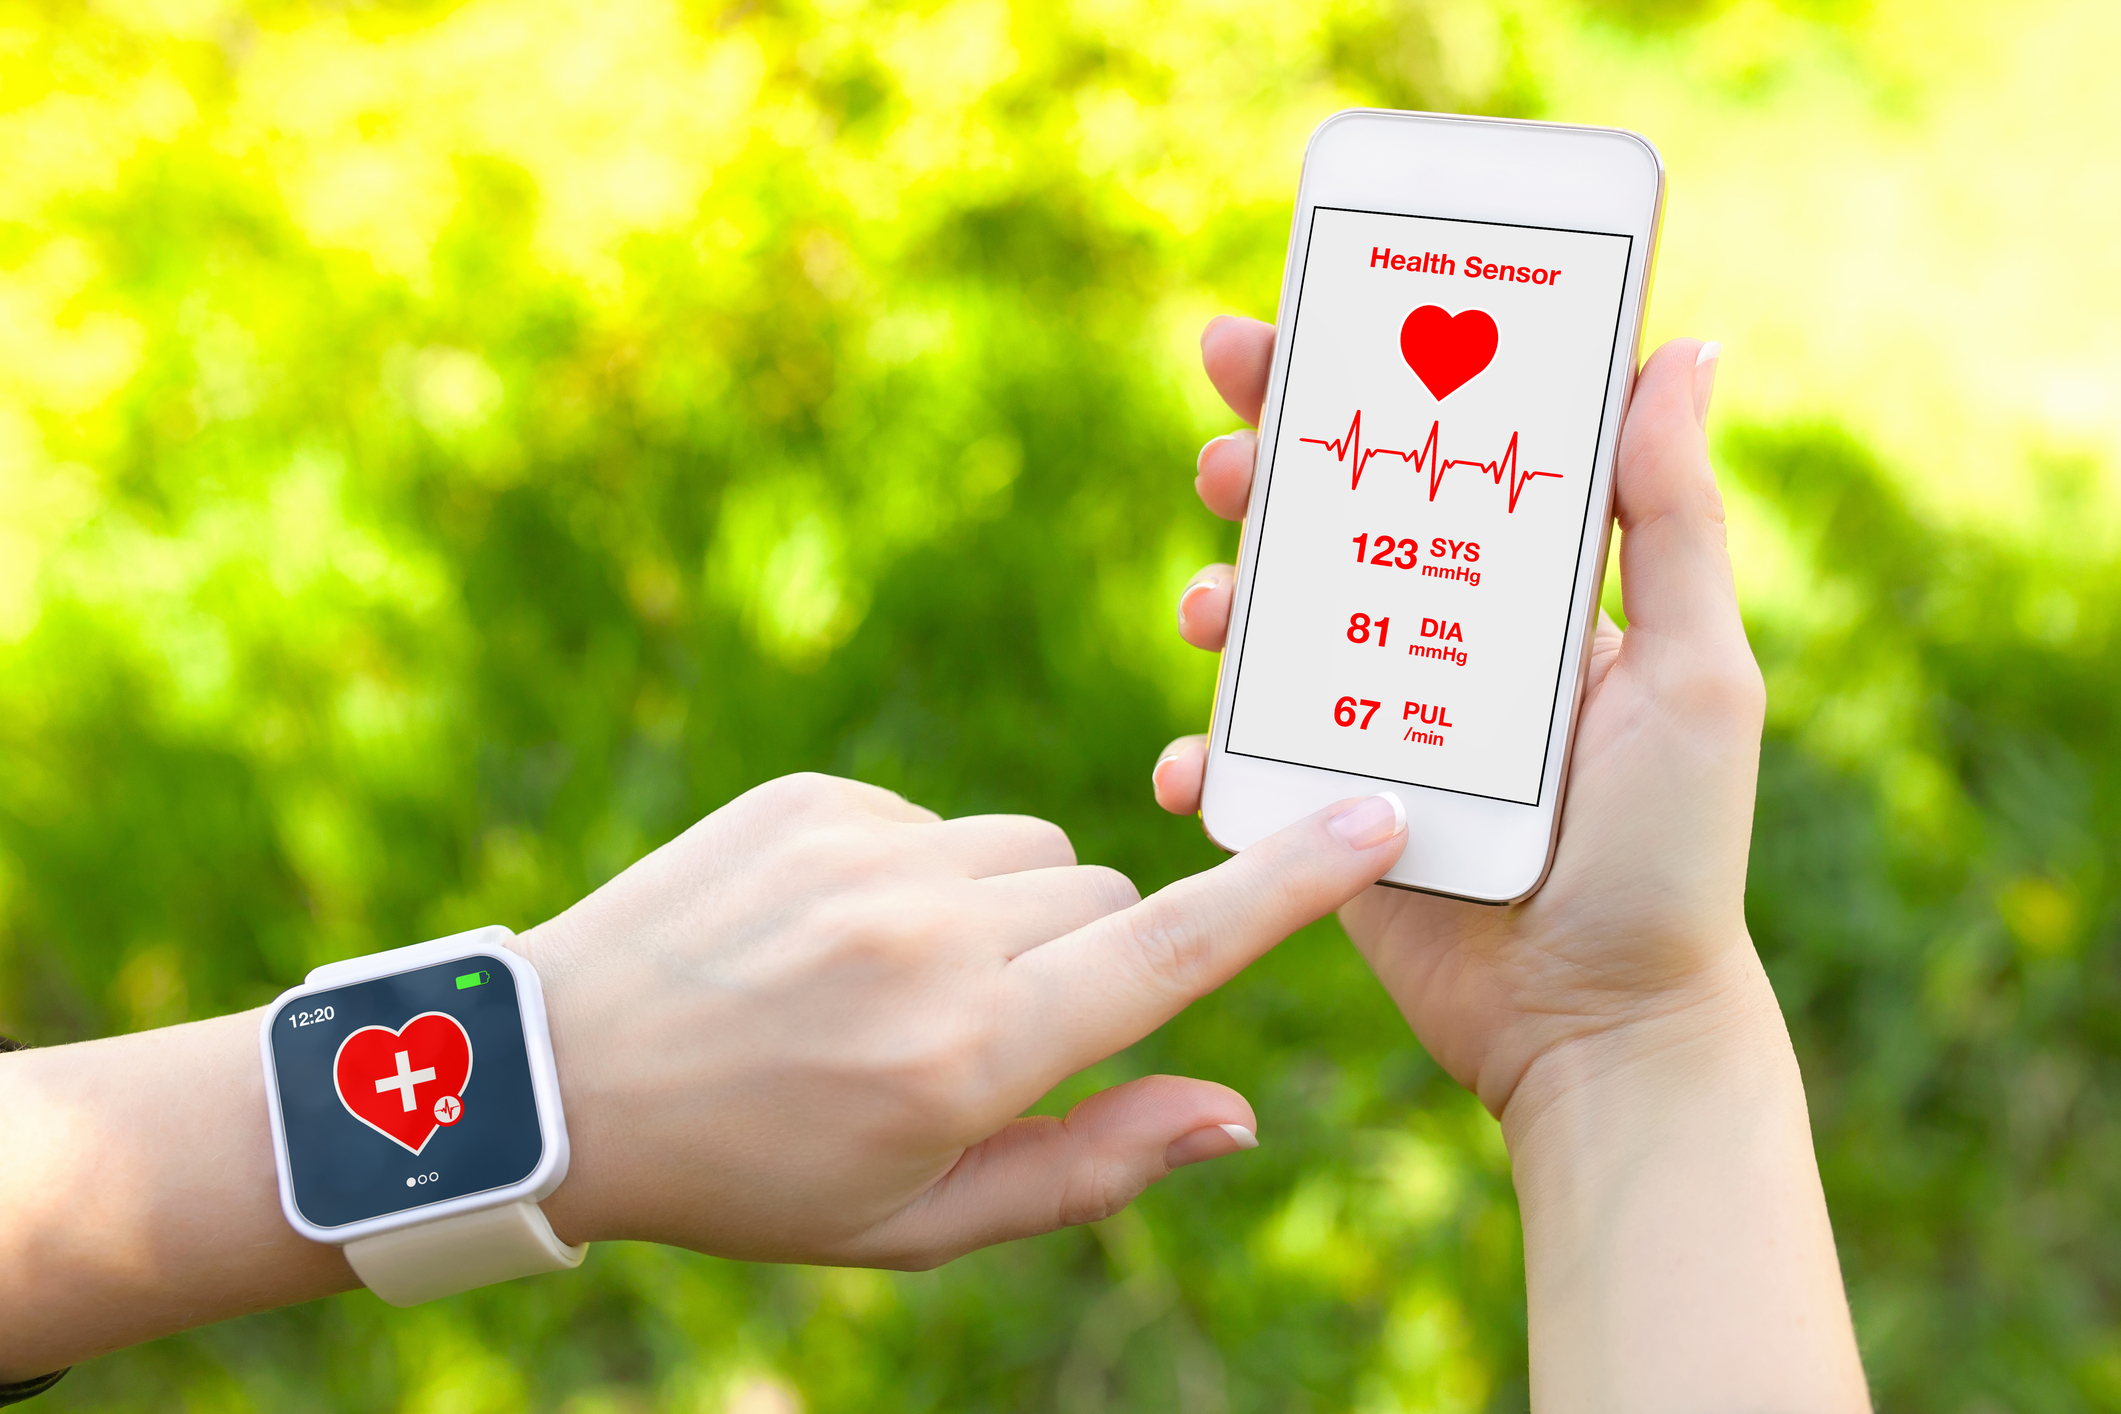 http://www.dreamstime.com/stock-photography-touch-phone-smart-watch-mobile-app-health-sensor-female-hands-holding-image40021002